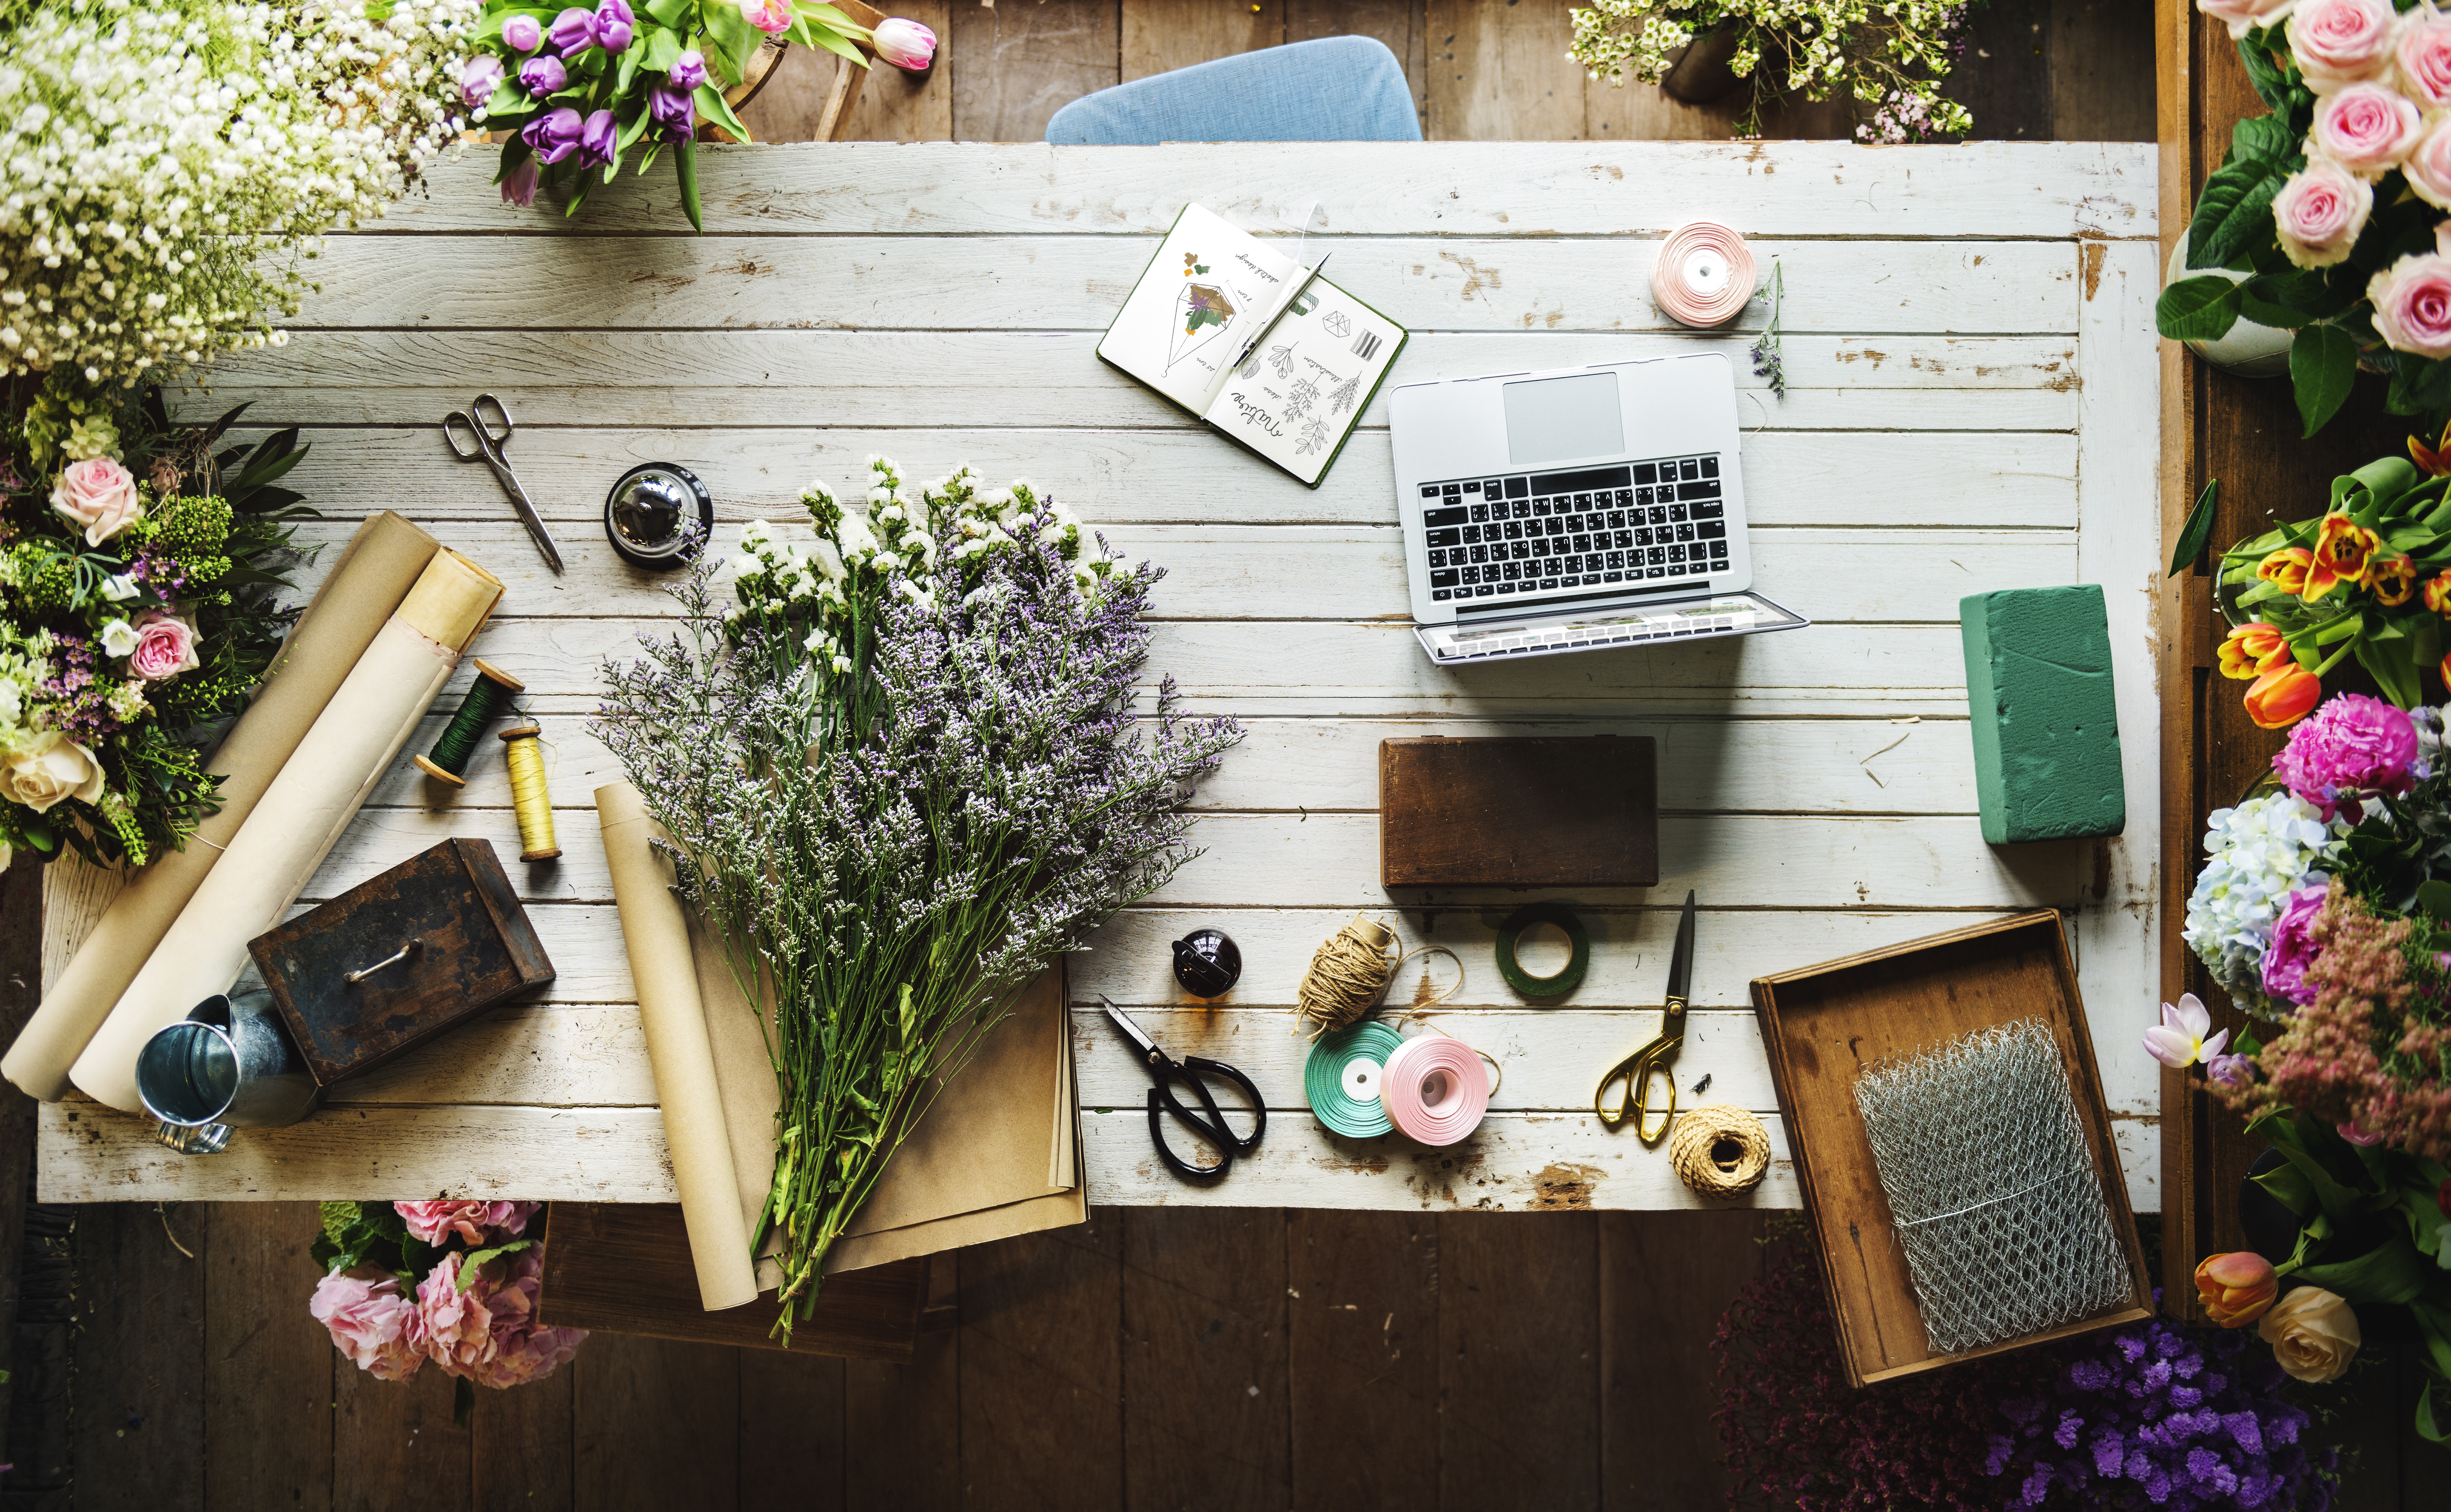 The basic supplies you need for flower arranging